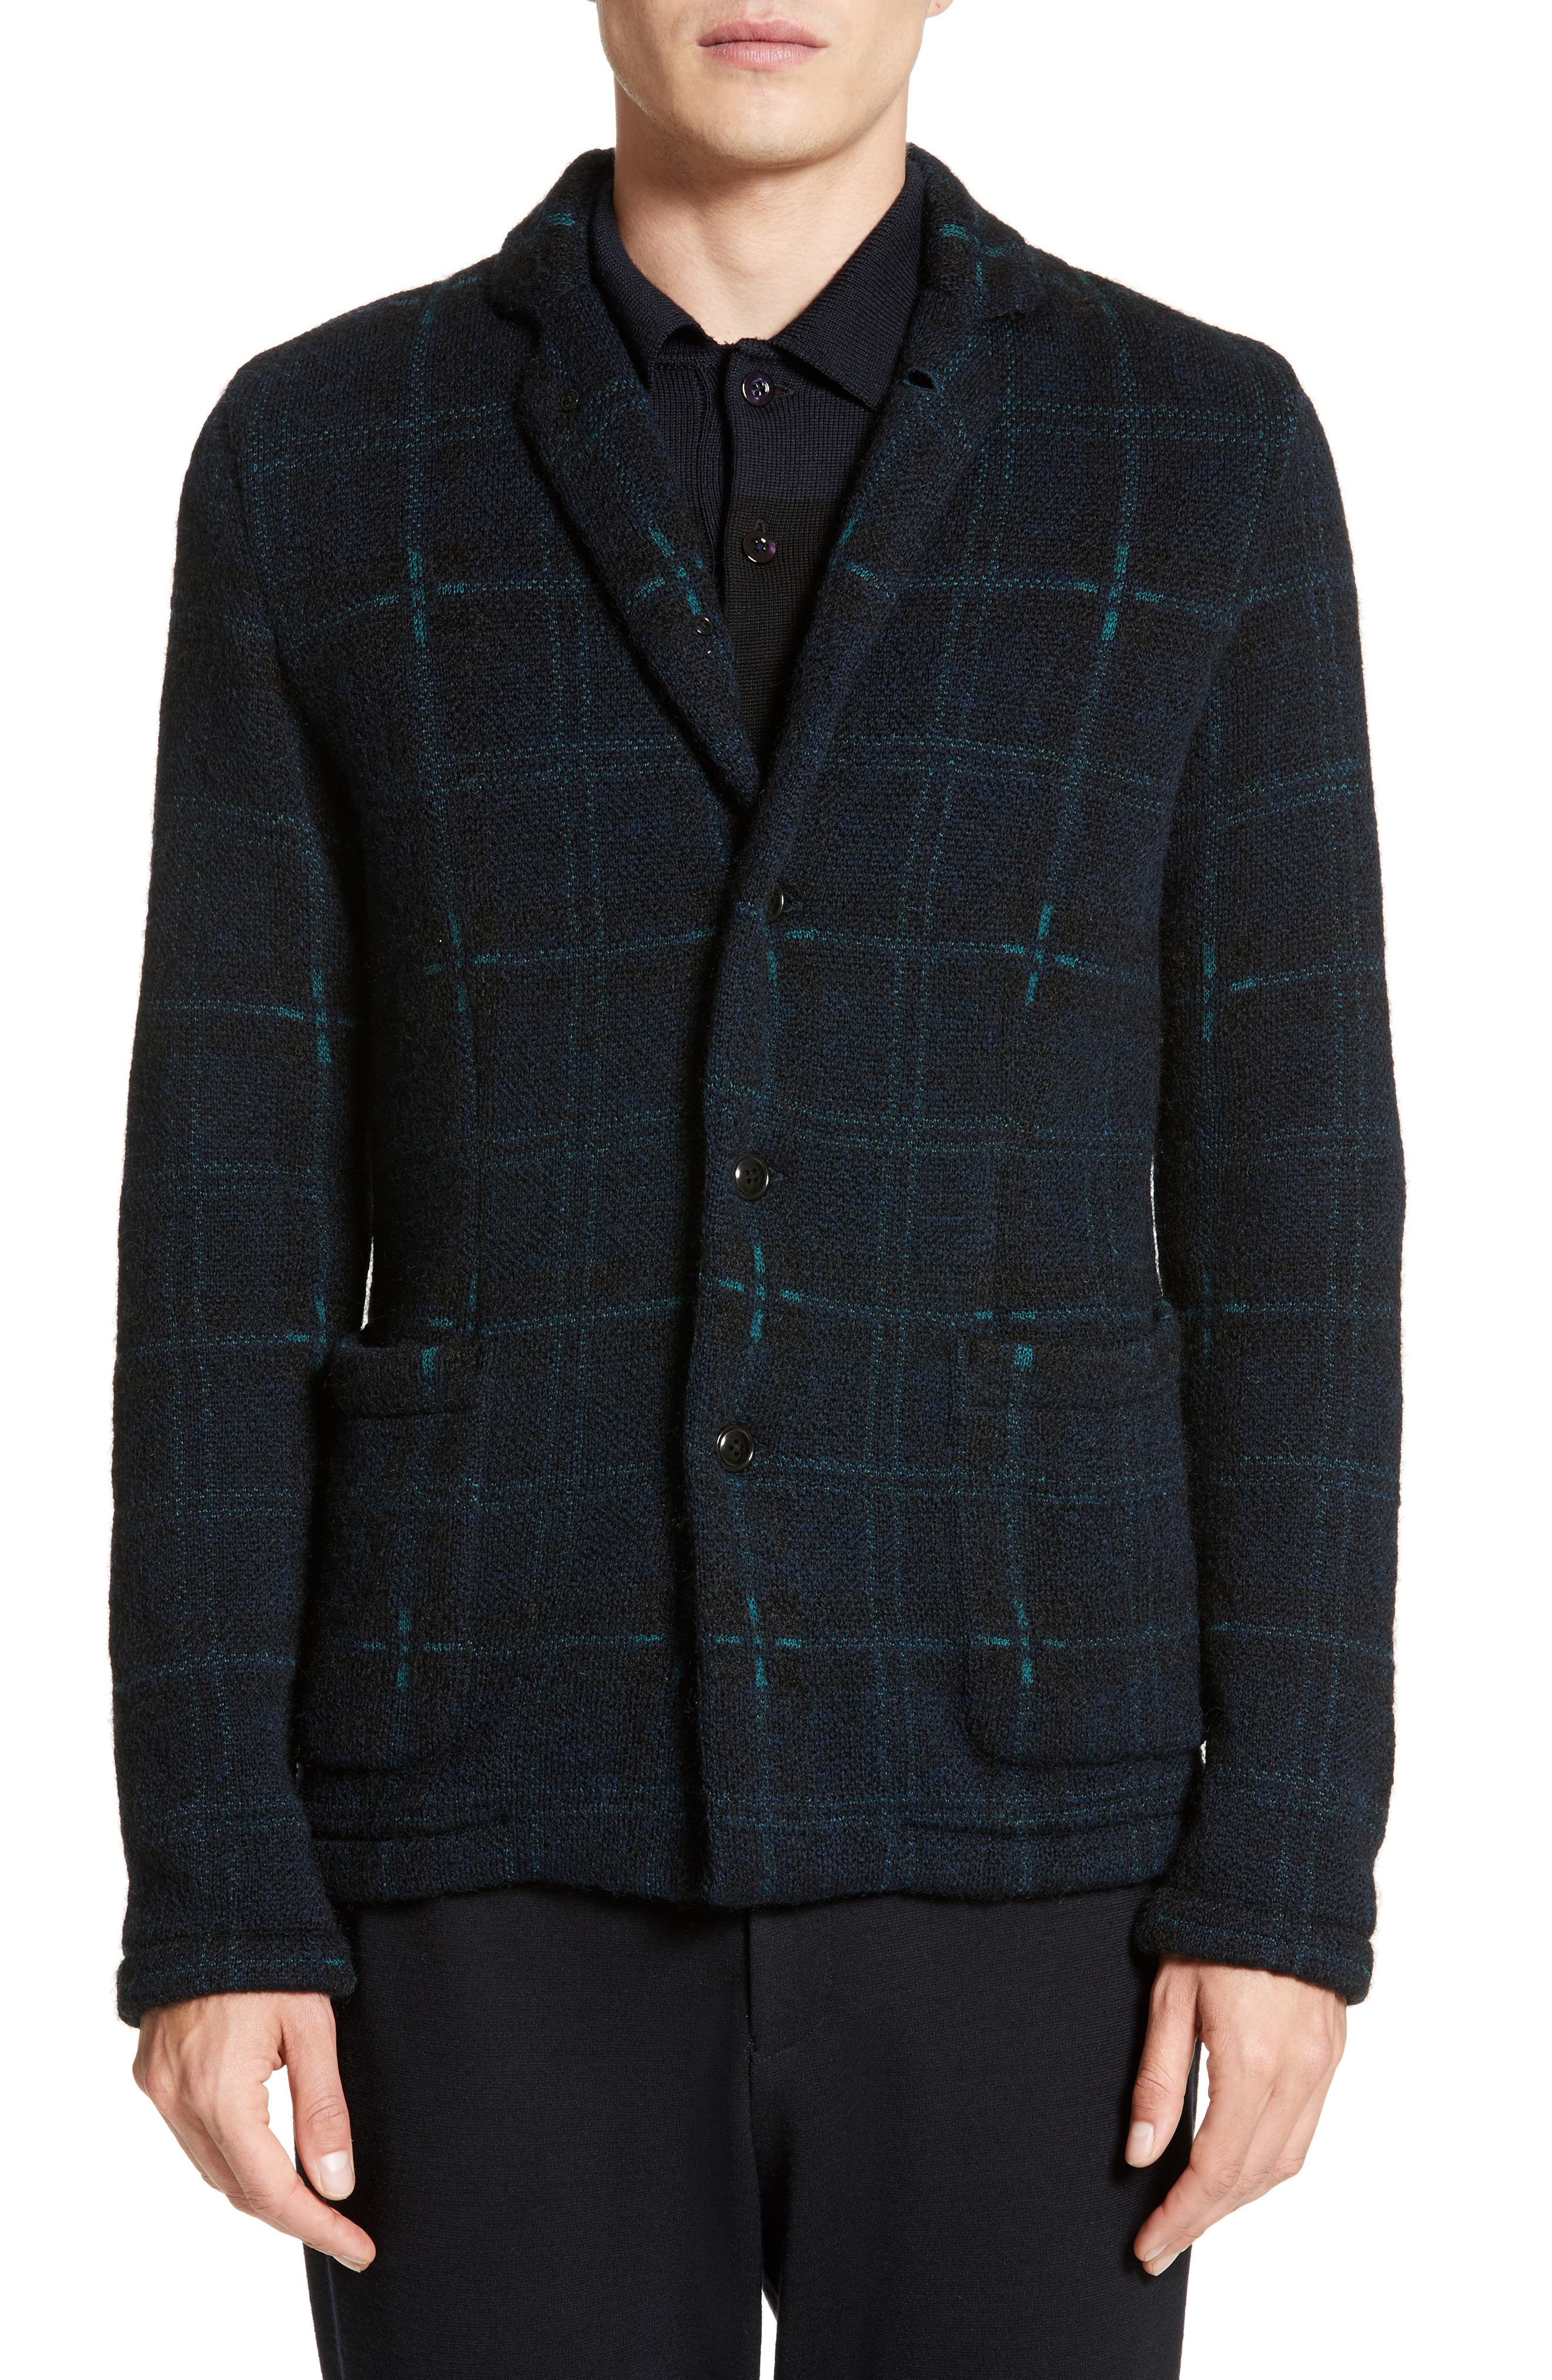 Wool Blend Knit Sportcoat,                             Main thumbnail 1, color,                             410